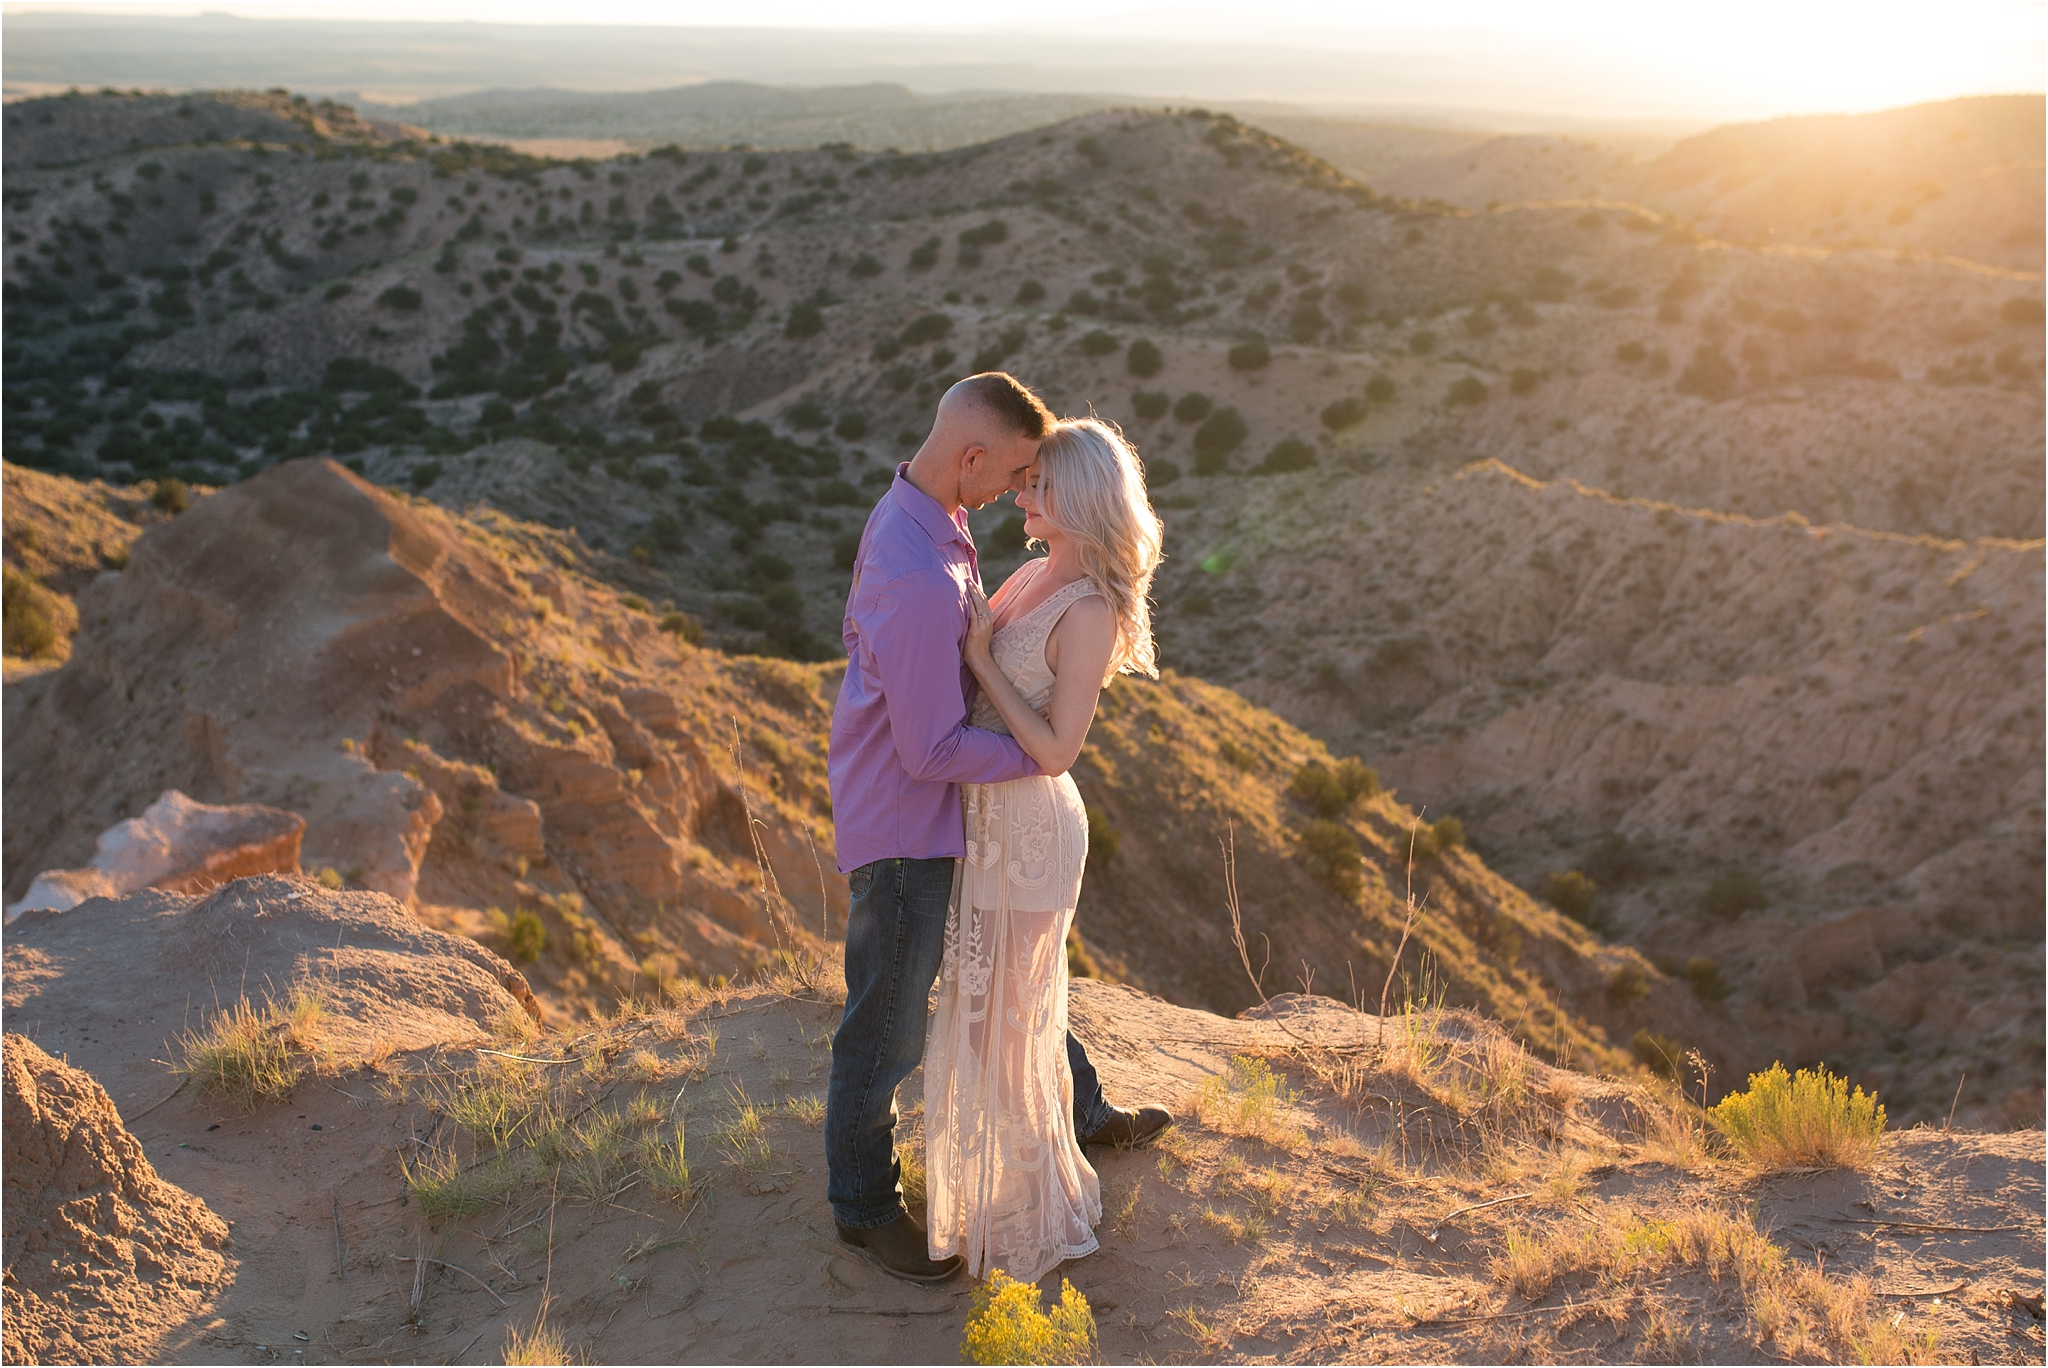 kayla kitts photography - new mexico wedding photographer - albuquerque engagement session_0019.jpg